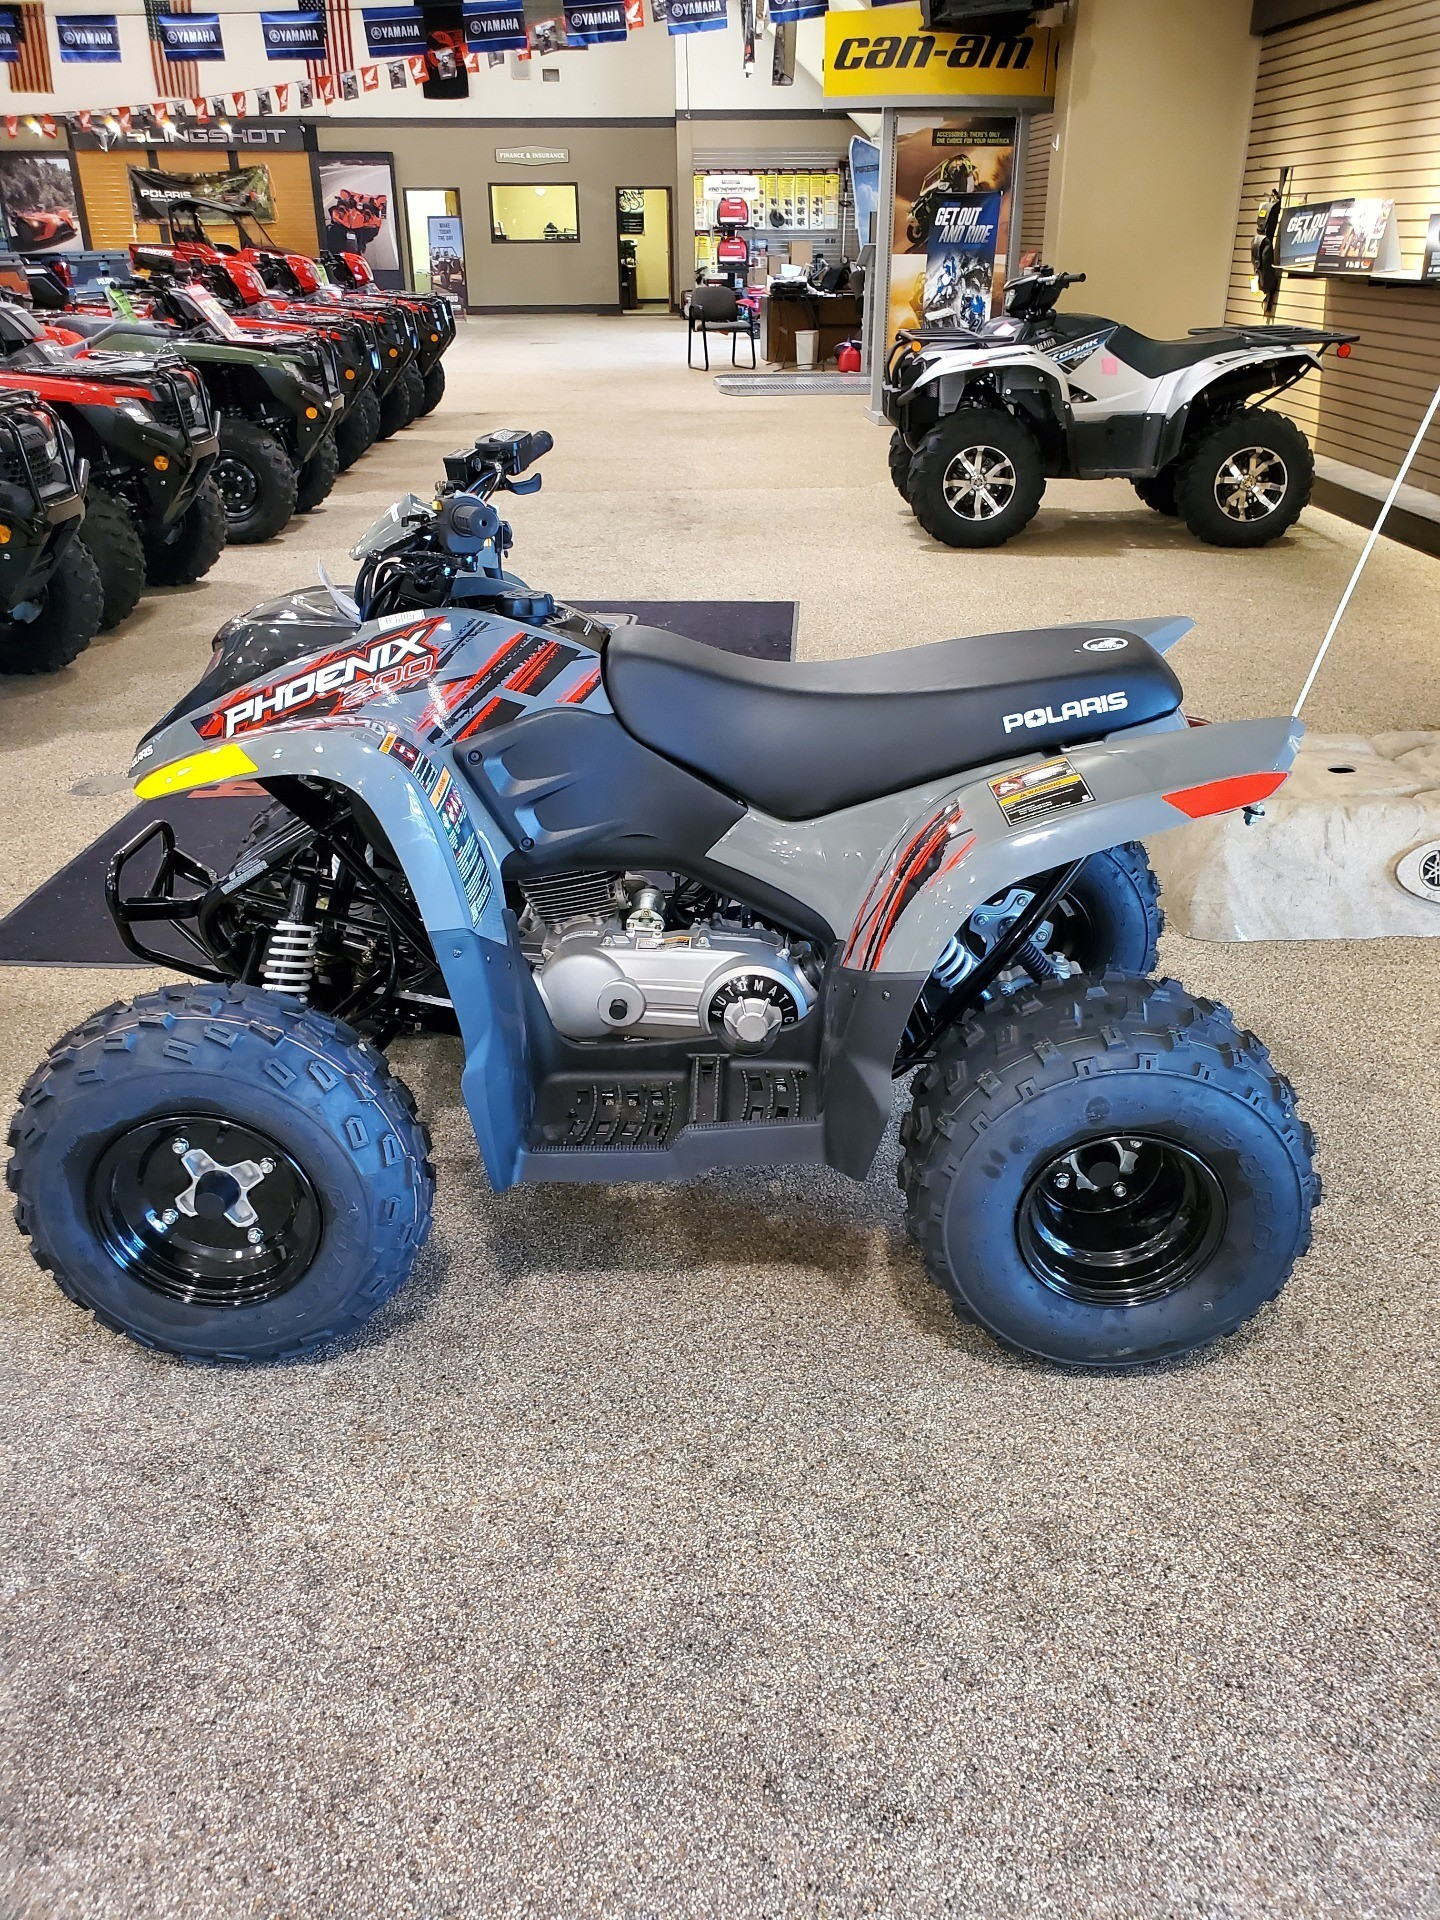 2020 Polaris Phoenix 200 in North Platte, Nebraska - Photo 2